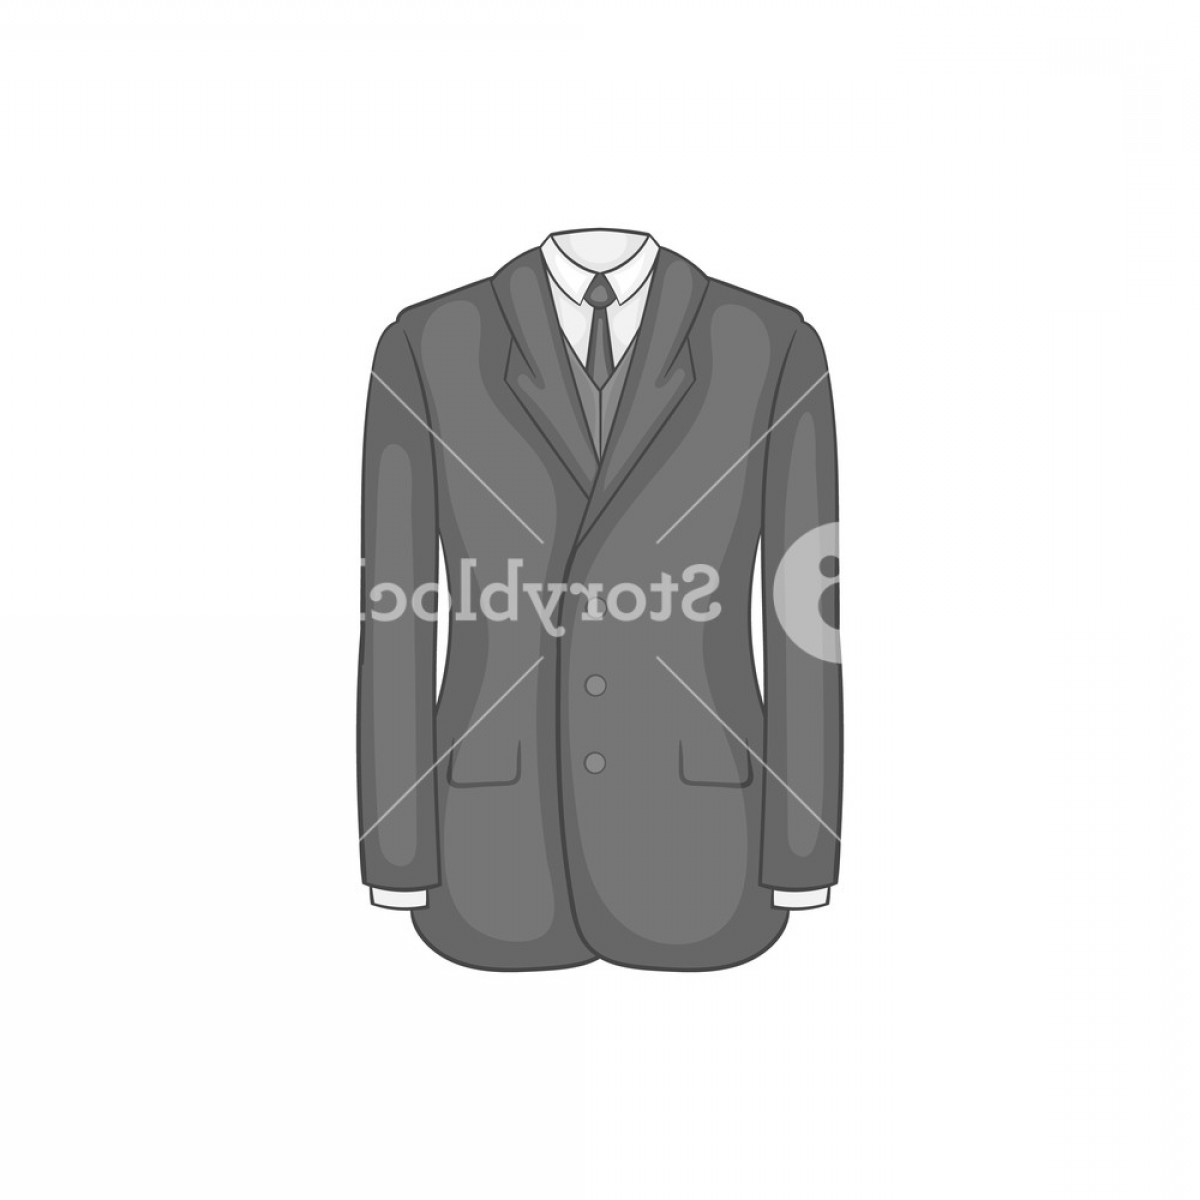 Gas Mask Suit And Tie Vector: Man Suit With Tie Icon In Black Monochrome Style On A White Background Vector Illustration Sc Kqnbymjhhulj